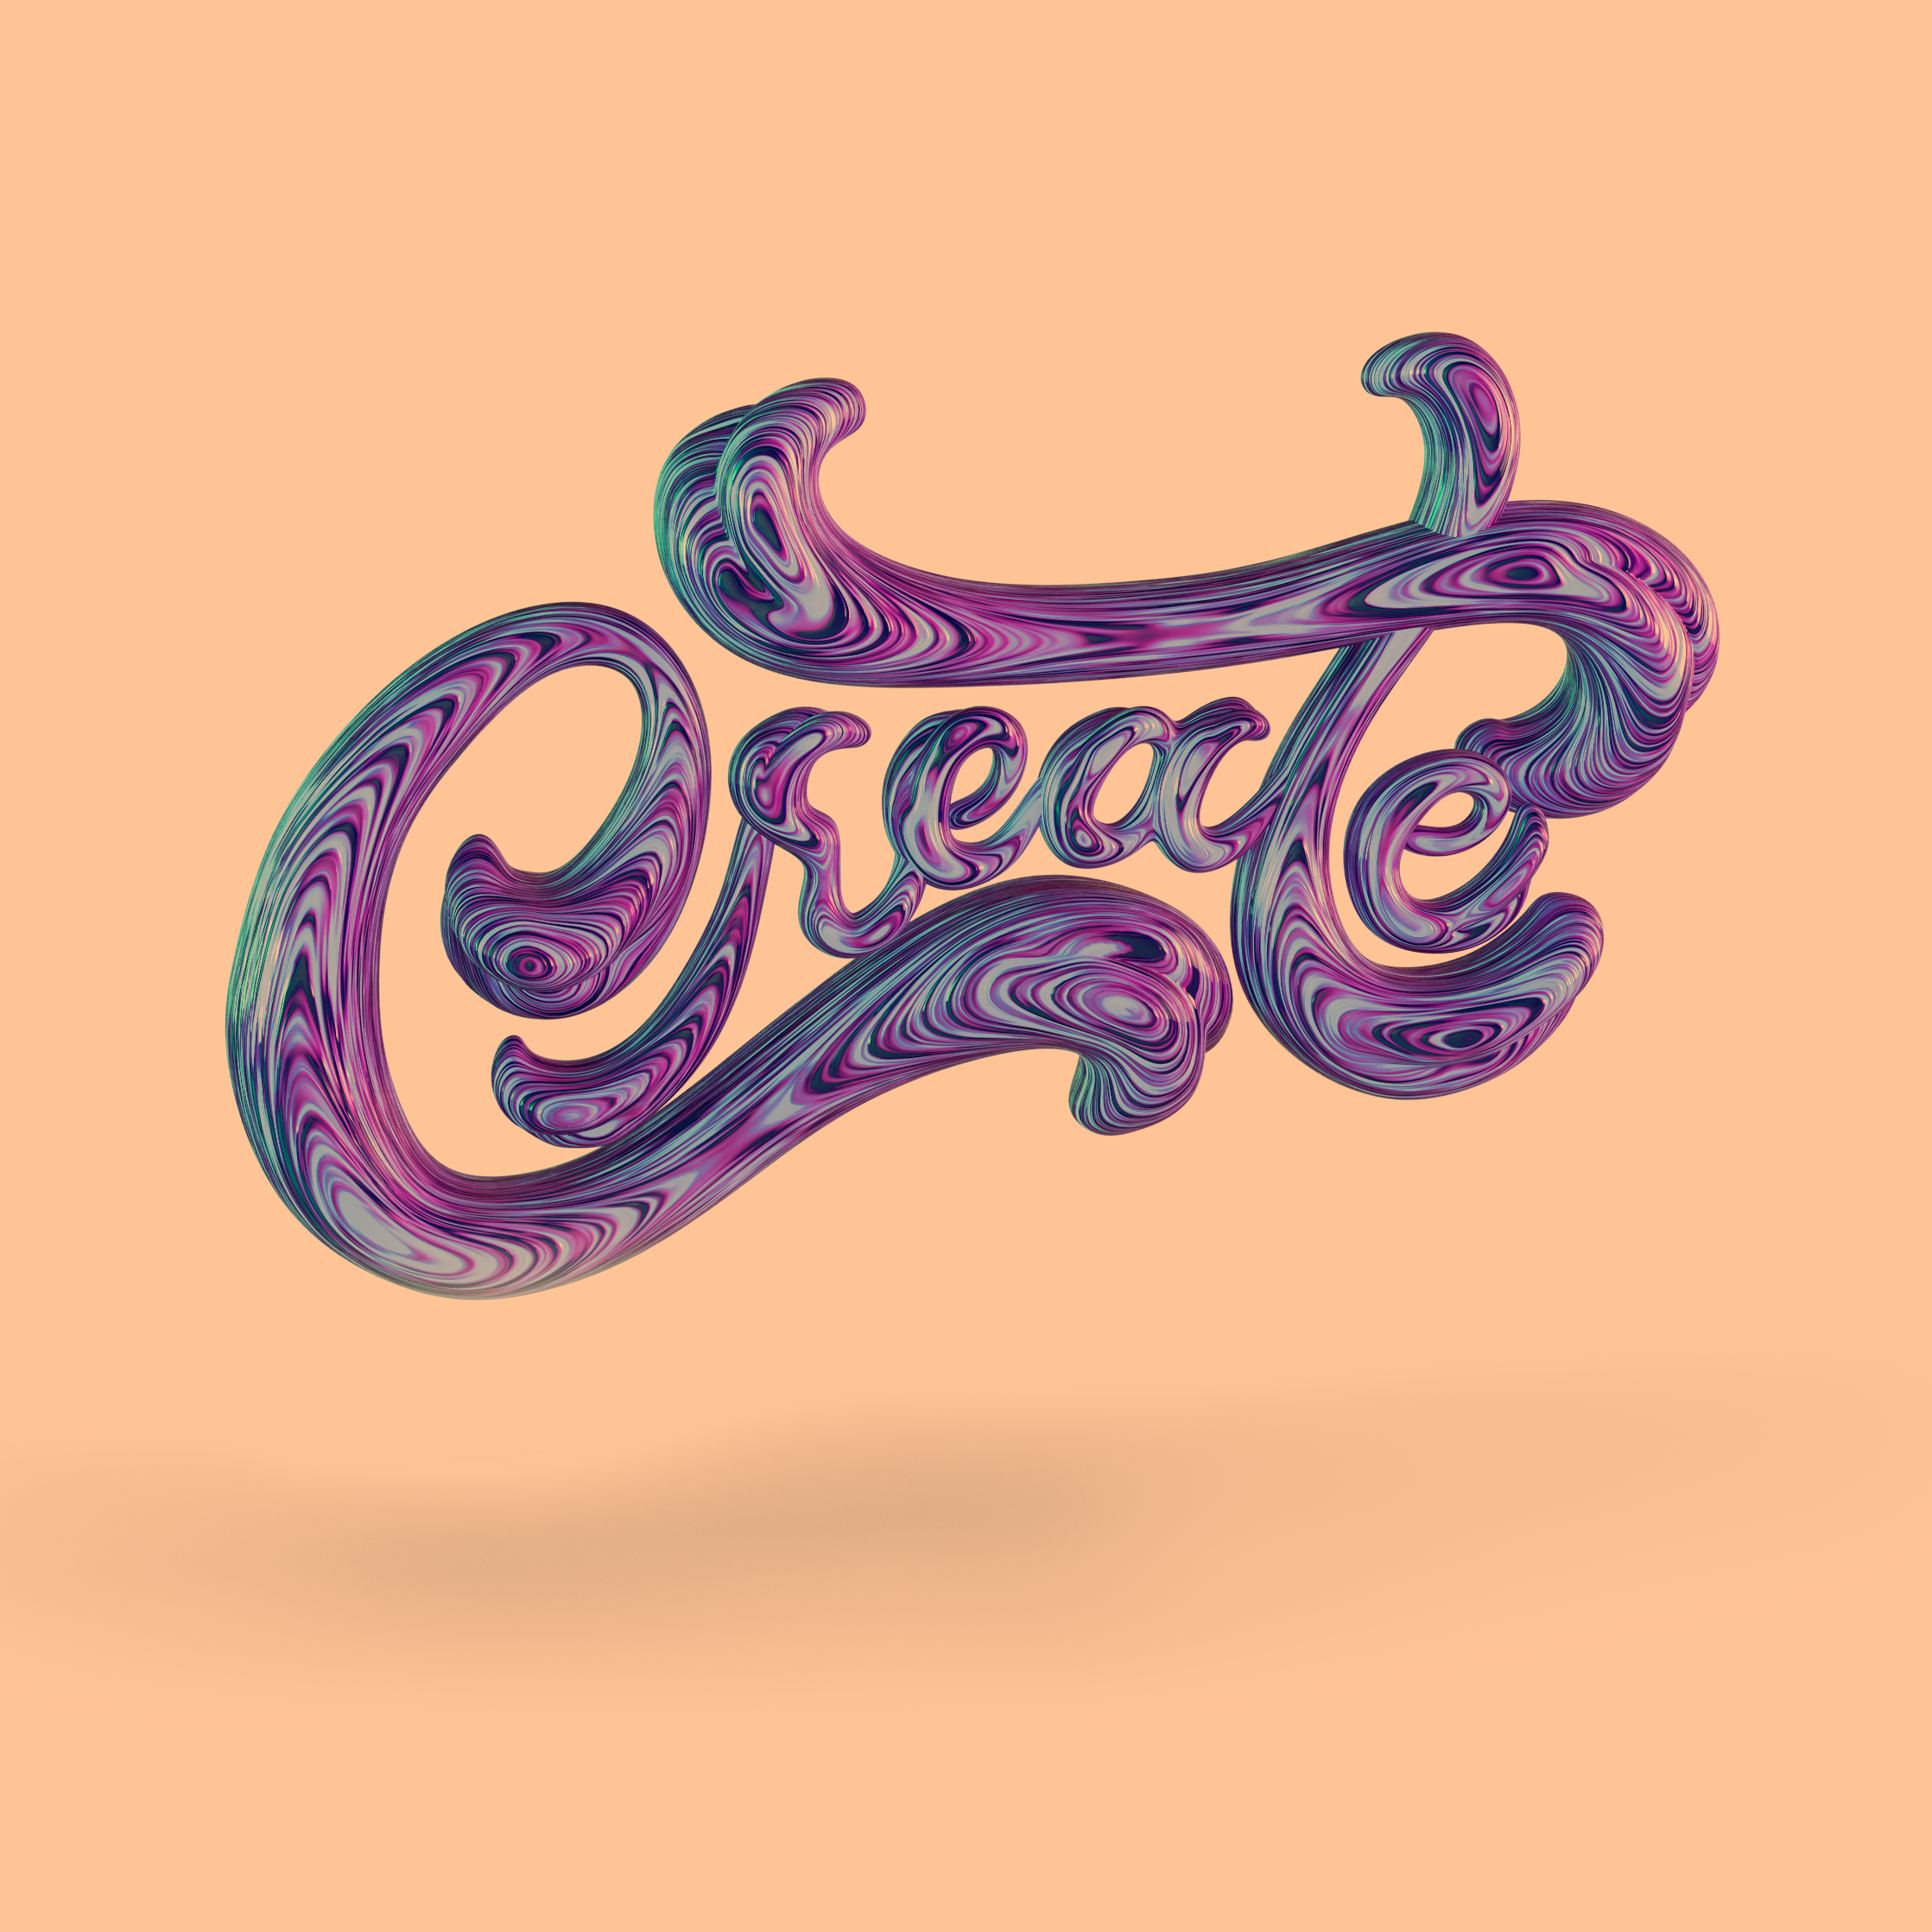 Create 3D Wooden Lettering by Noah Camp